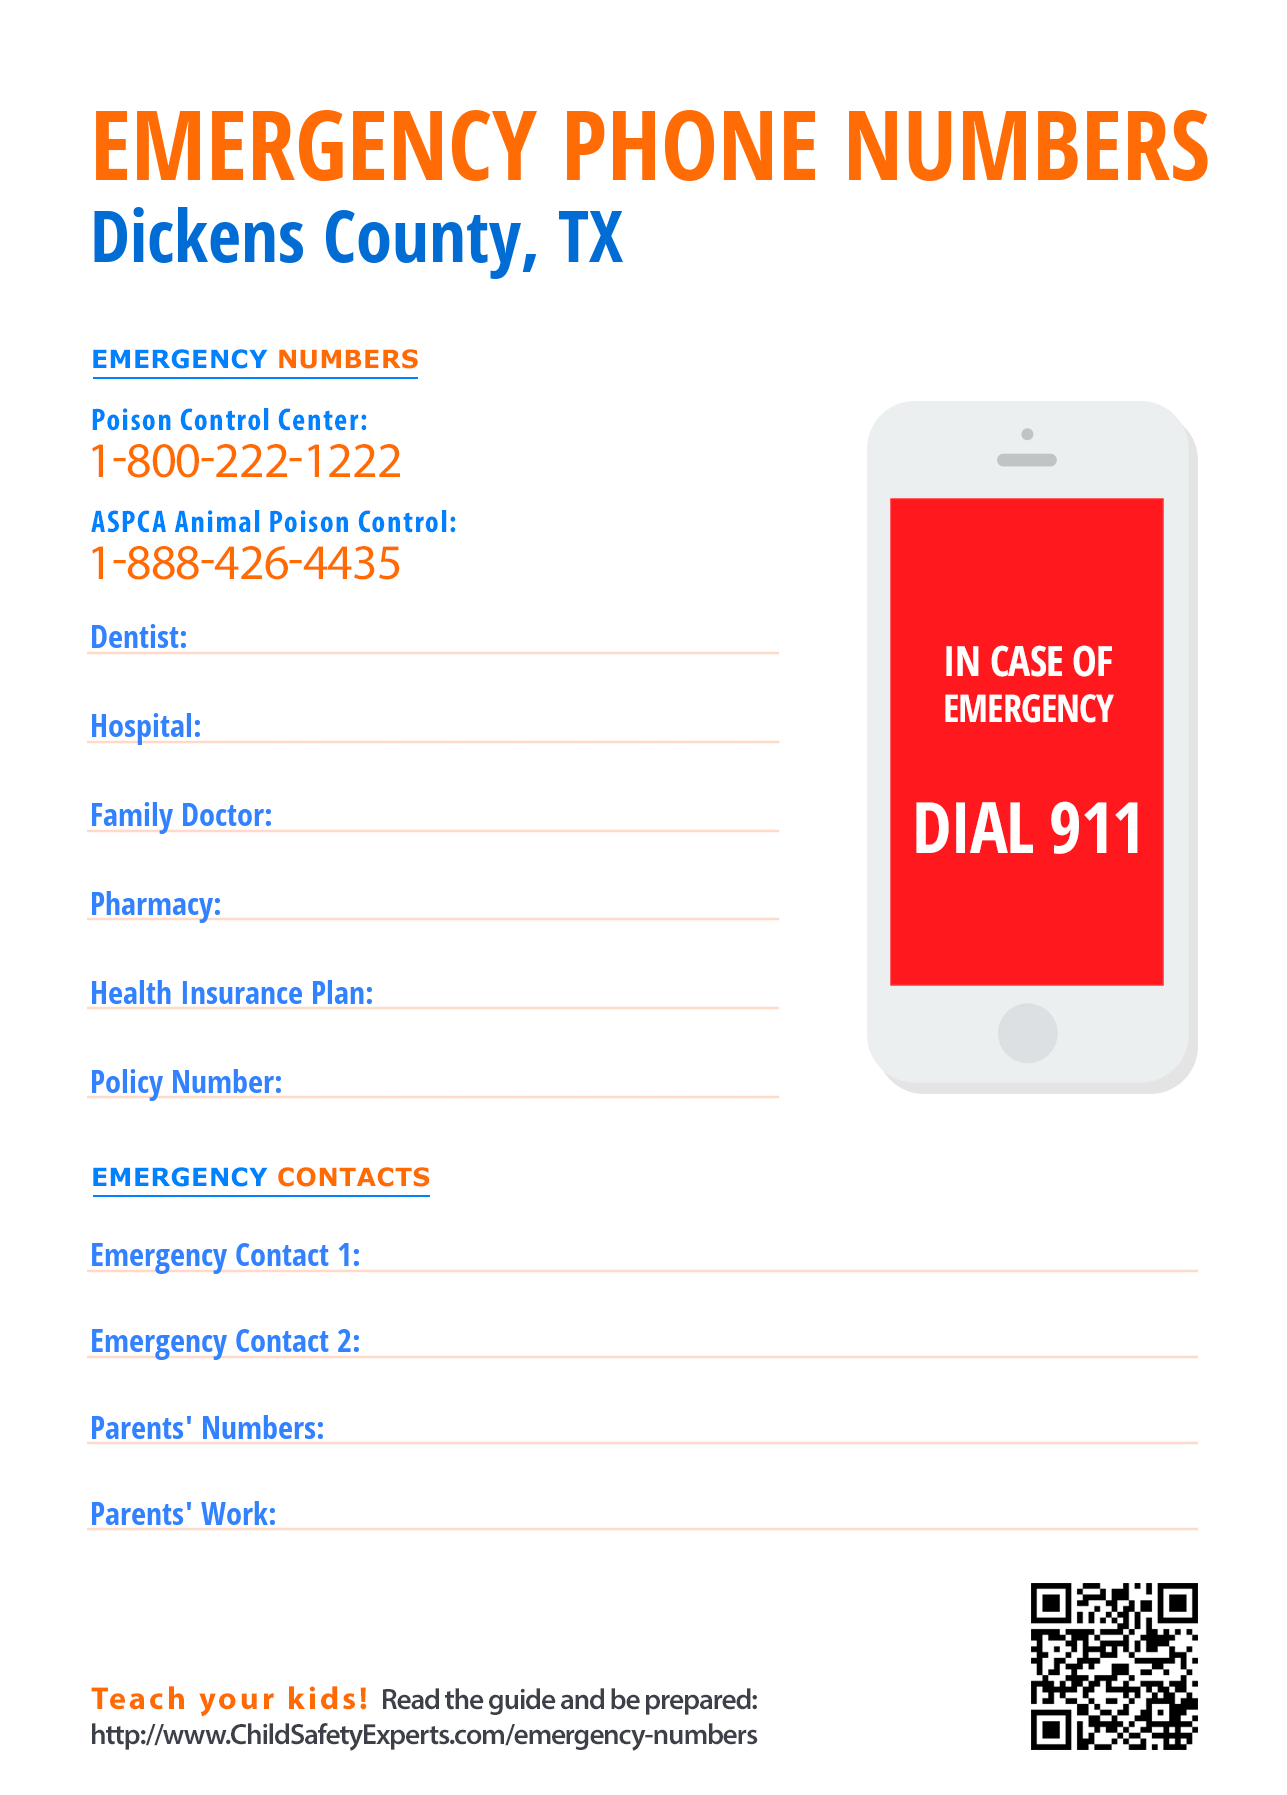 Important emergency phone numbers in Dickens County, Texas